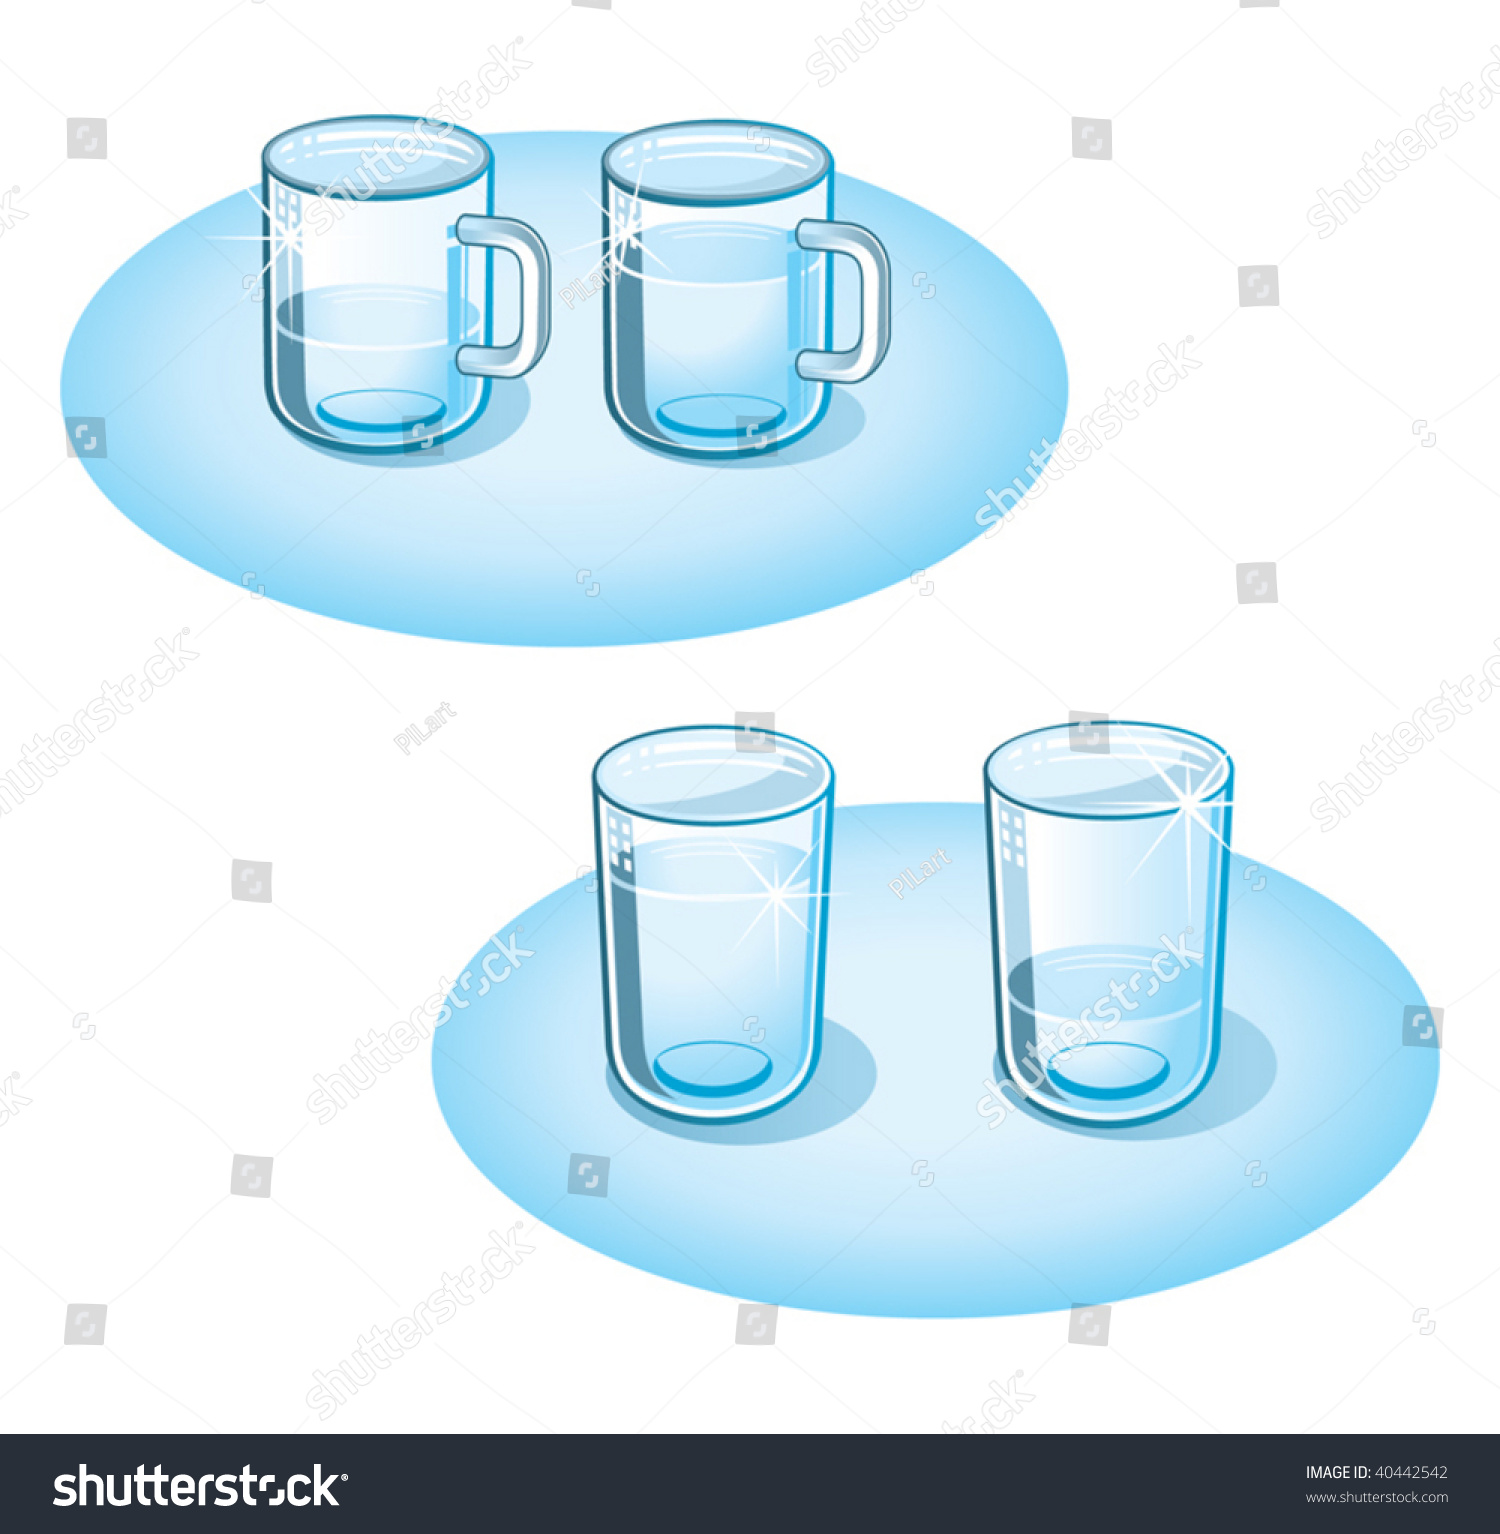 cup of water clipart - photo #44